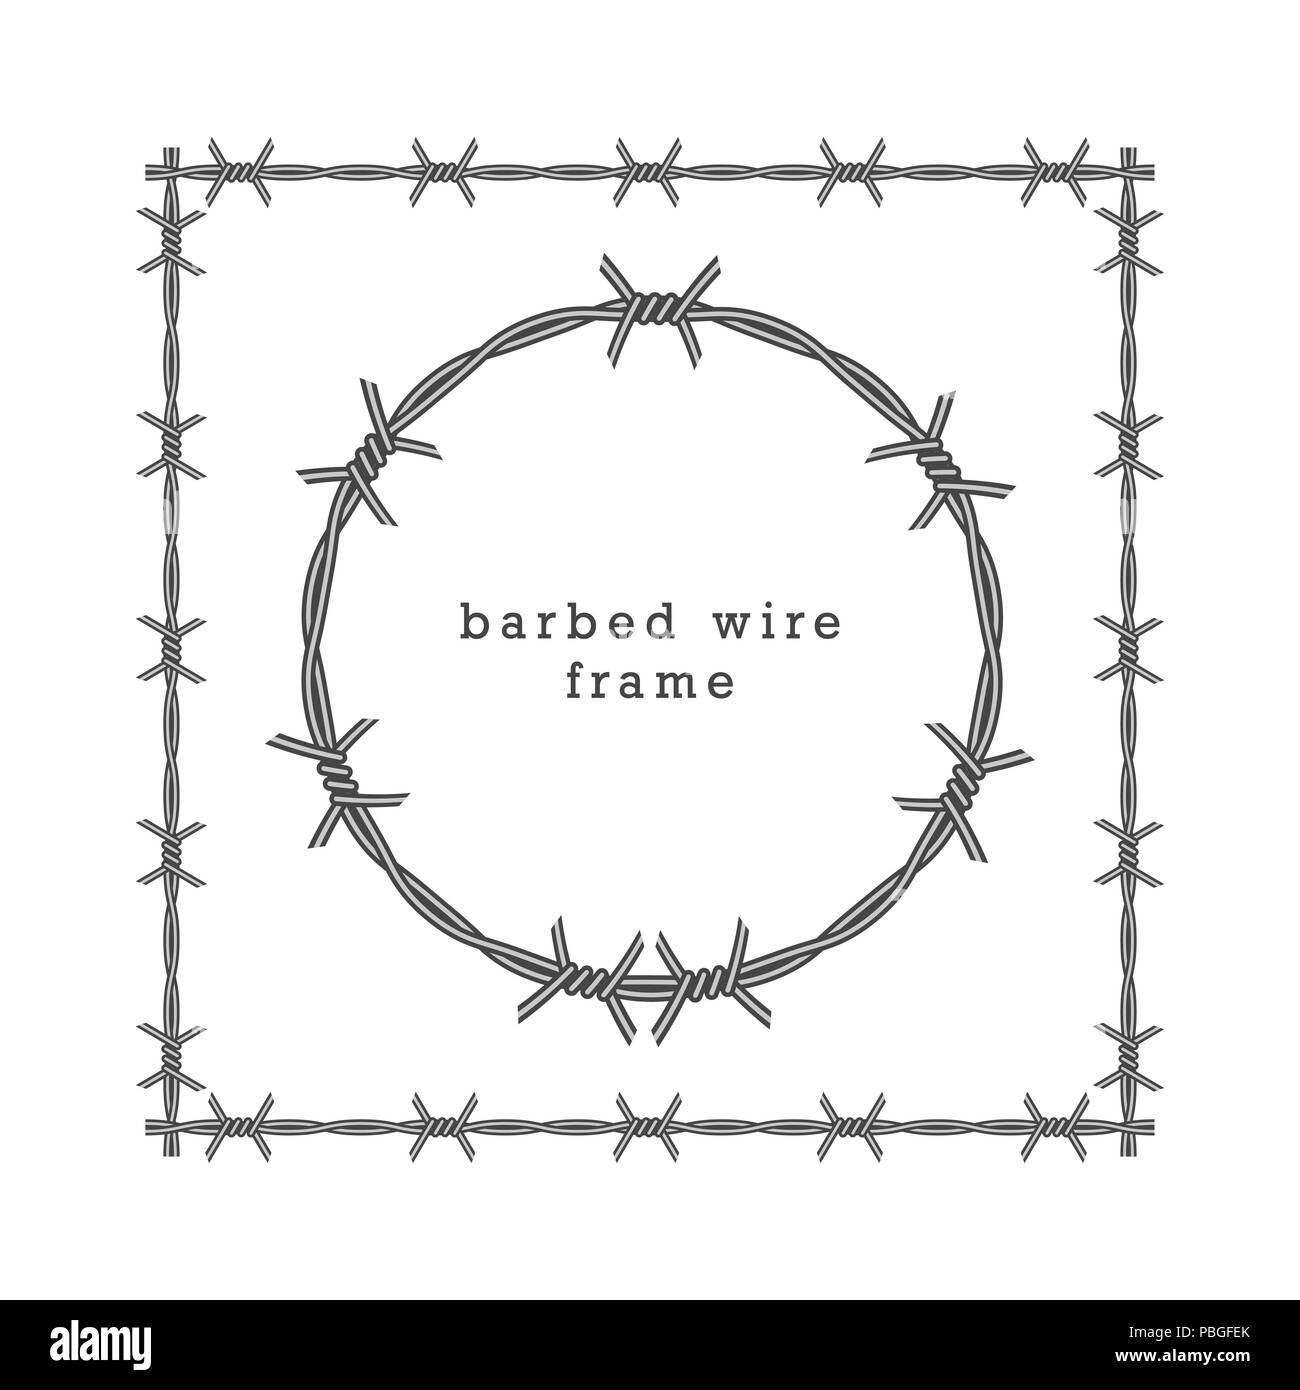 Square and Circle Barbed Wire Frames, Illustration. Military Frames ...